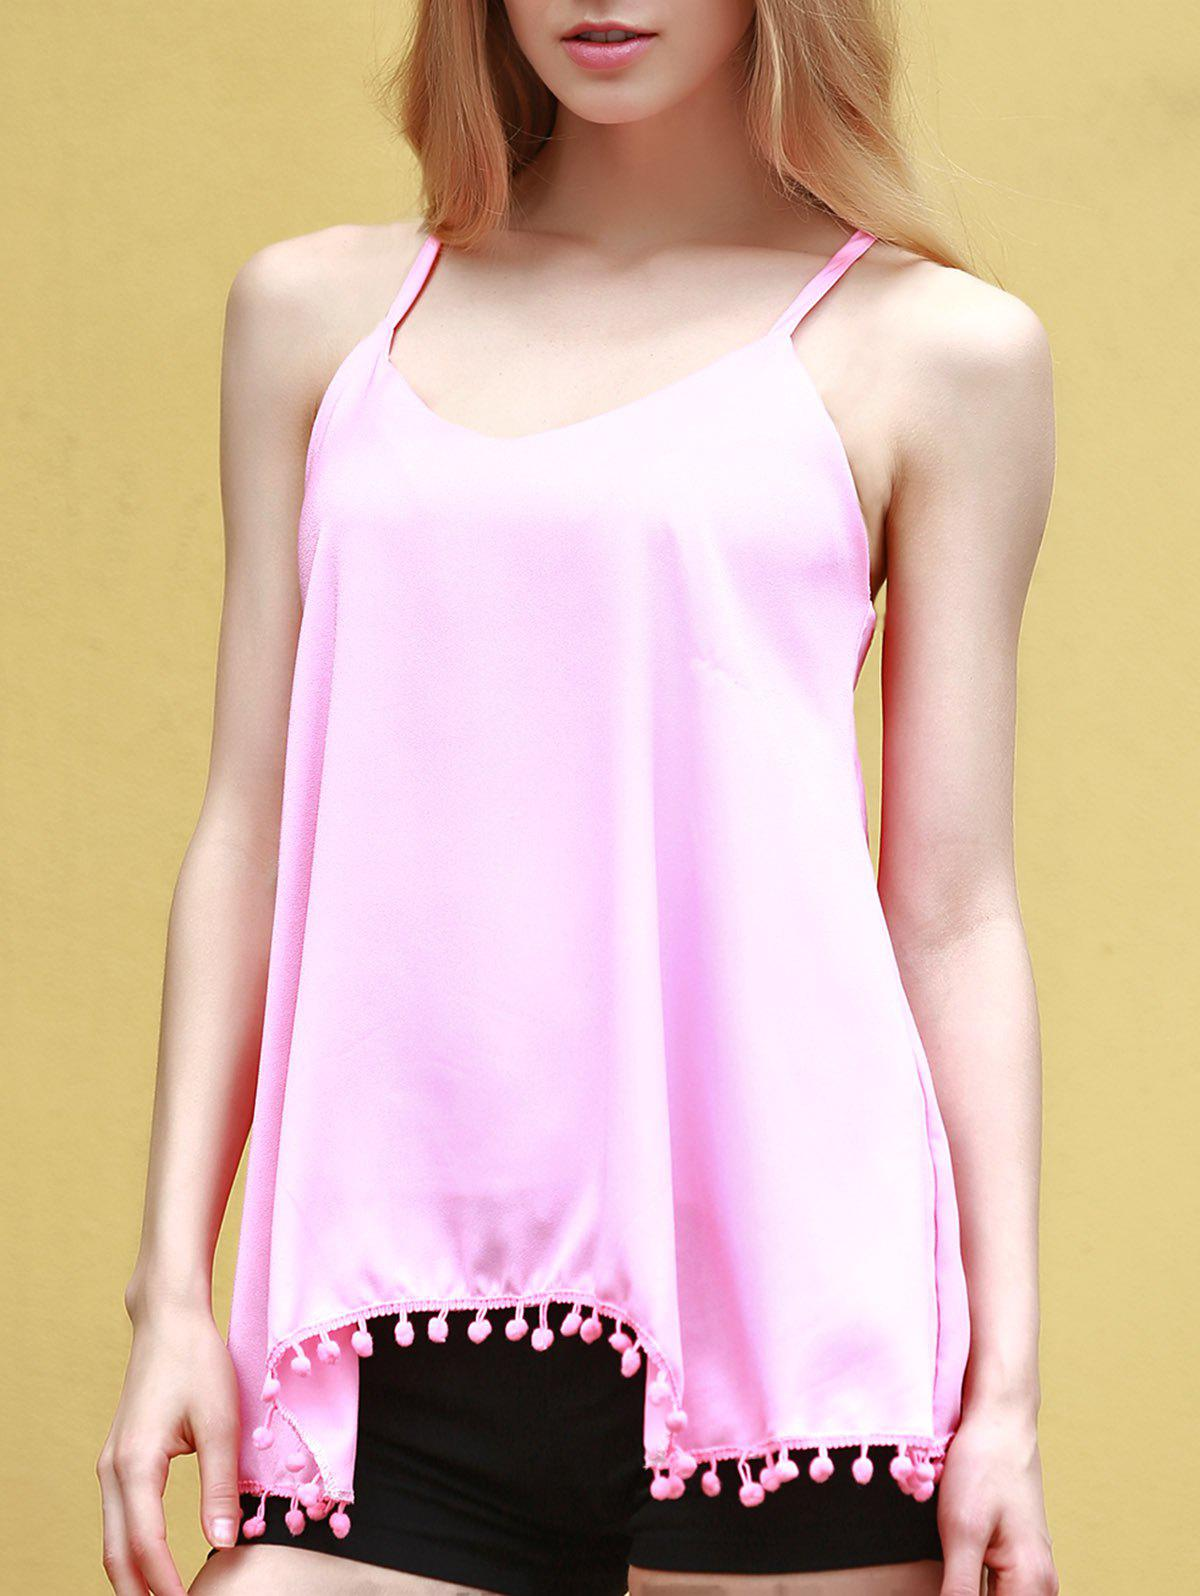 Endearing Pendant Design Solid Color Chiffon Tank Top For Women - PINK S